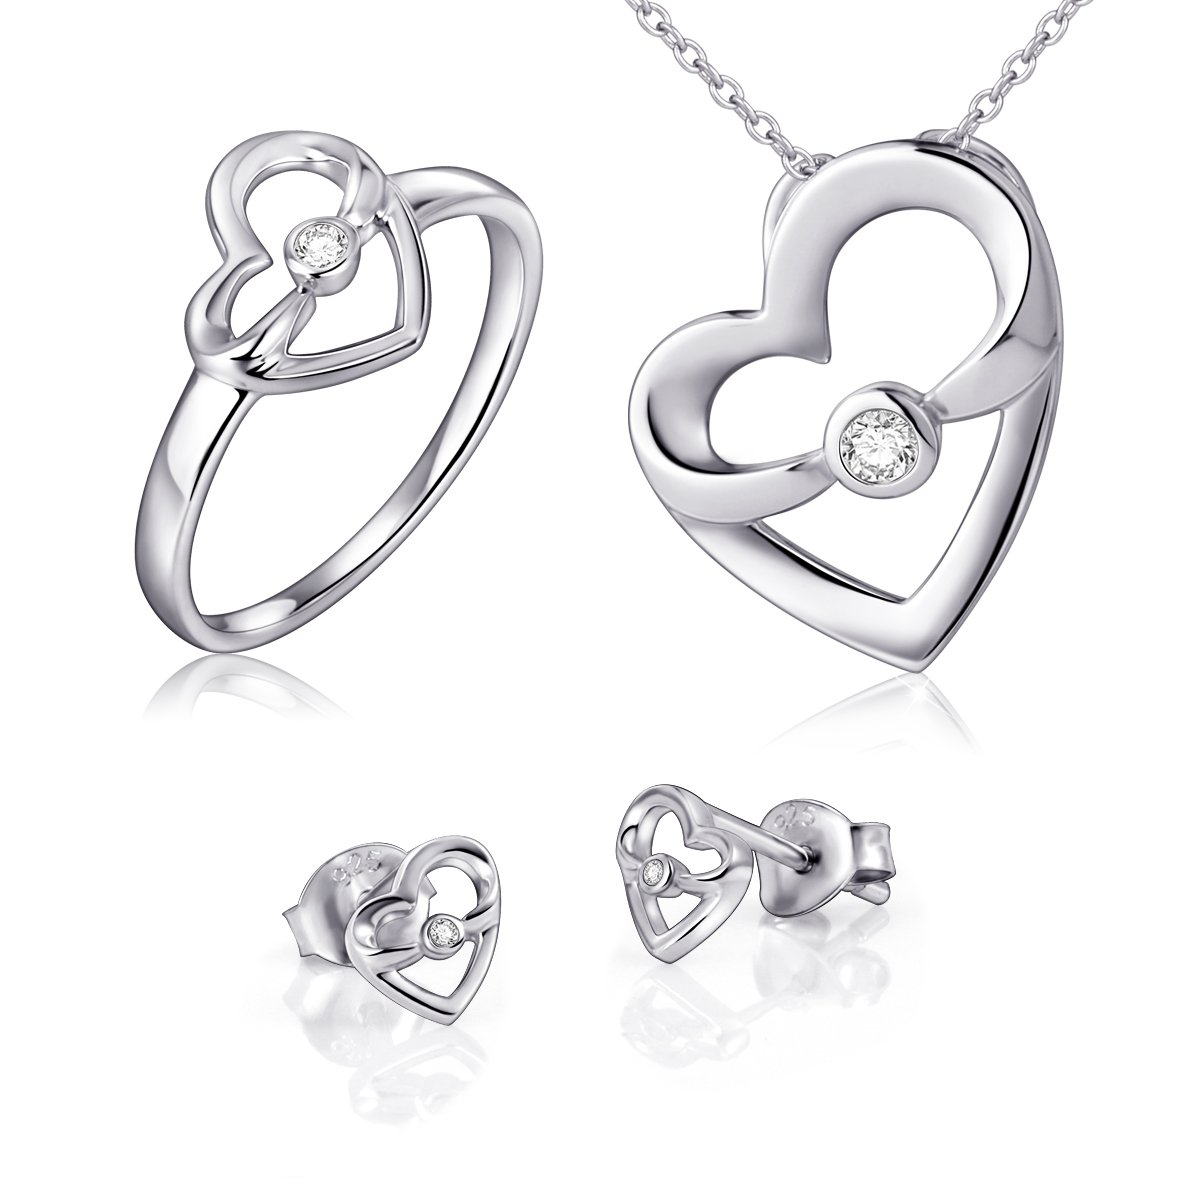 925 Sterling Silver Mother Child Love Heart Jewelry Set, Ring, Stud Earrings and Pedant Necklace for Mom